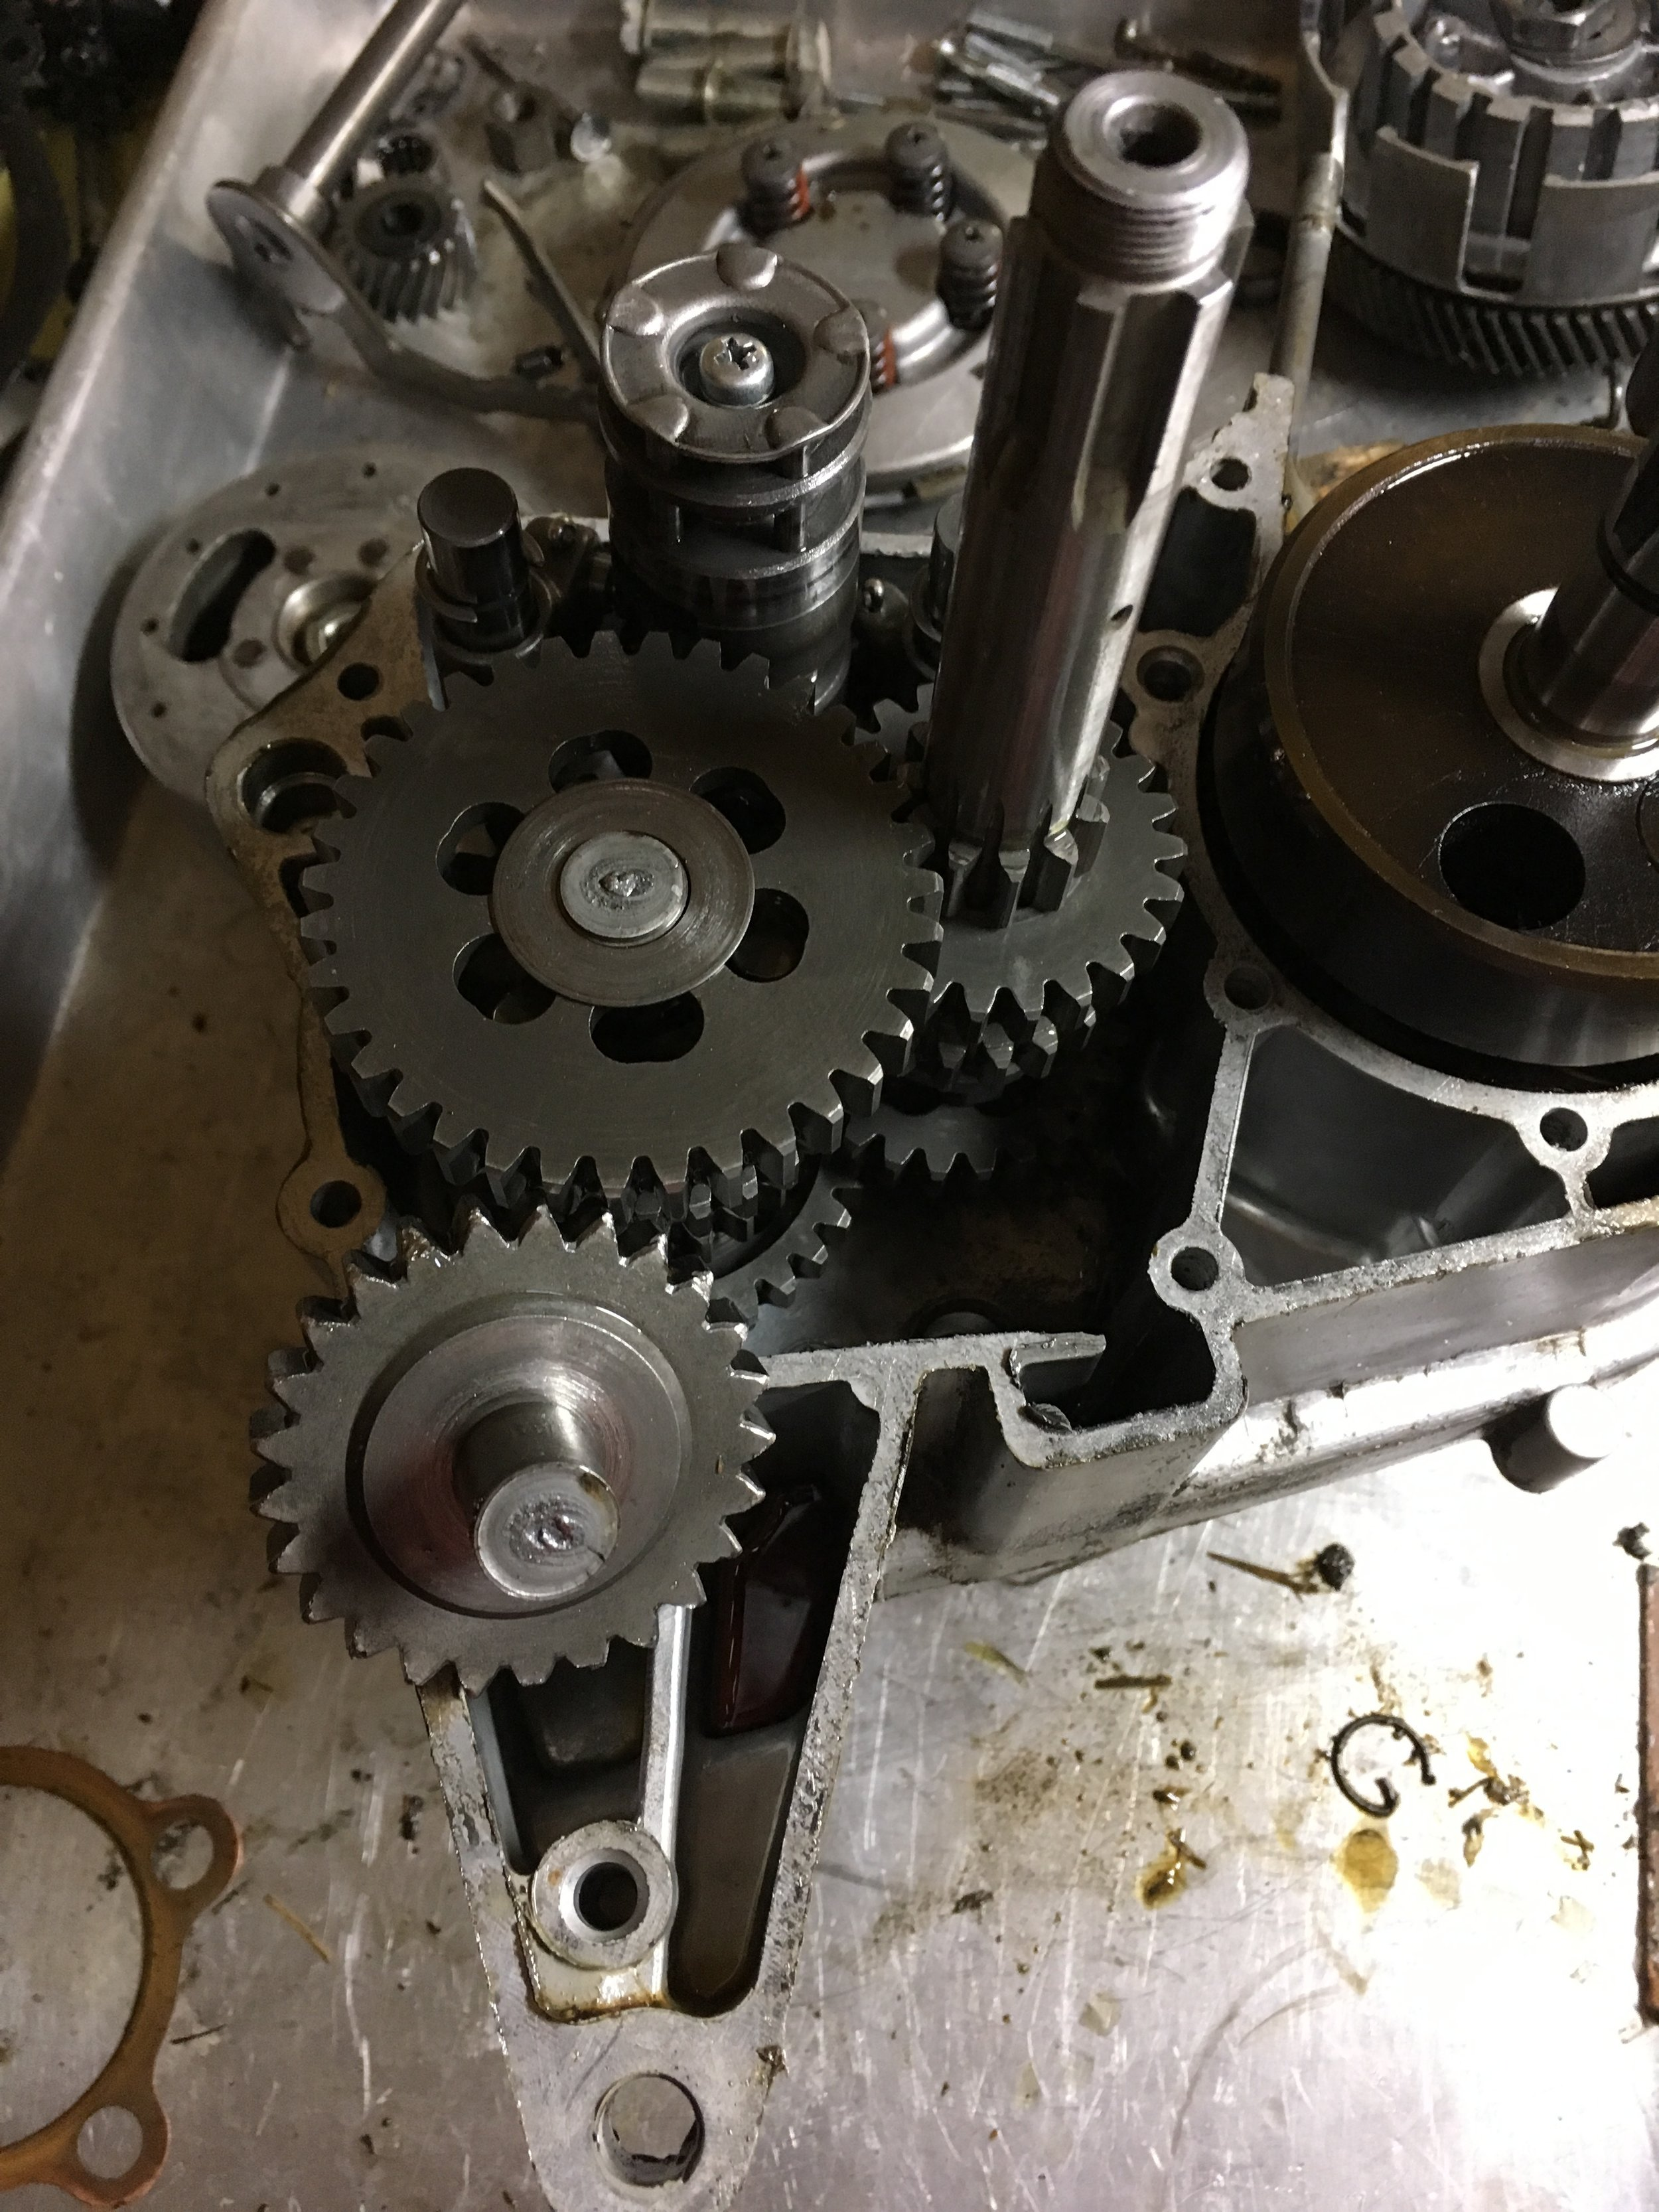 Some of the carnage inside the 1973 Yamaha CT-3. Apparently the bike was wrecked during an errant wheelie. My guess is that the kickstart was jammed on while the engine was revved, shearing off the gear and end of the output shaft. The sheared tranny shaft gear normally lies between the primary shaft of the tranny and the kickstart gear. A coming parts engine will hopefully have intact replacements.